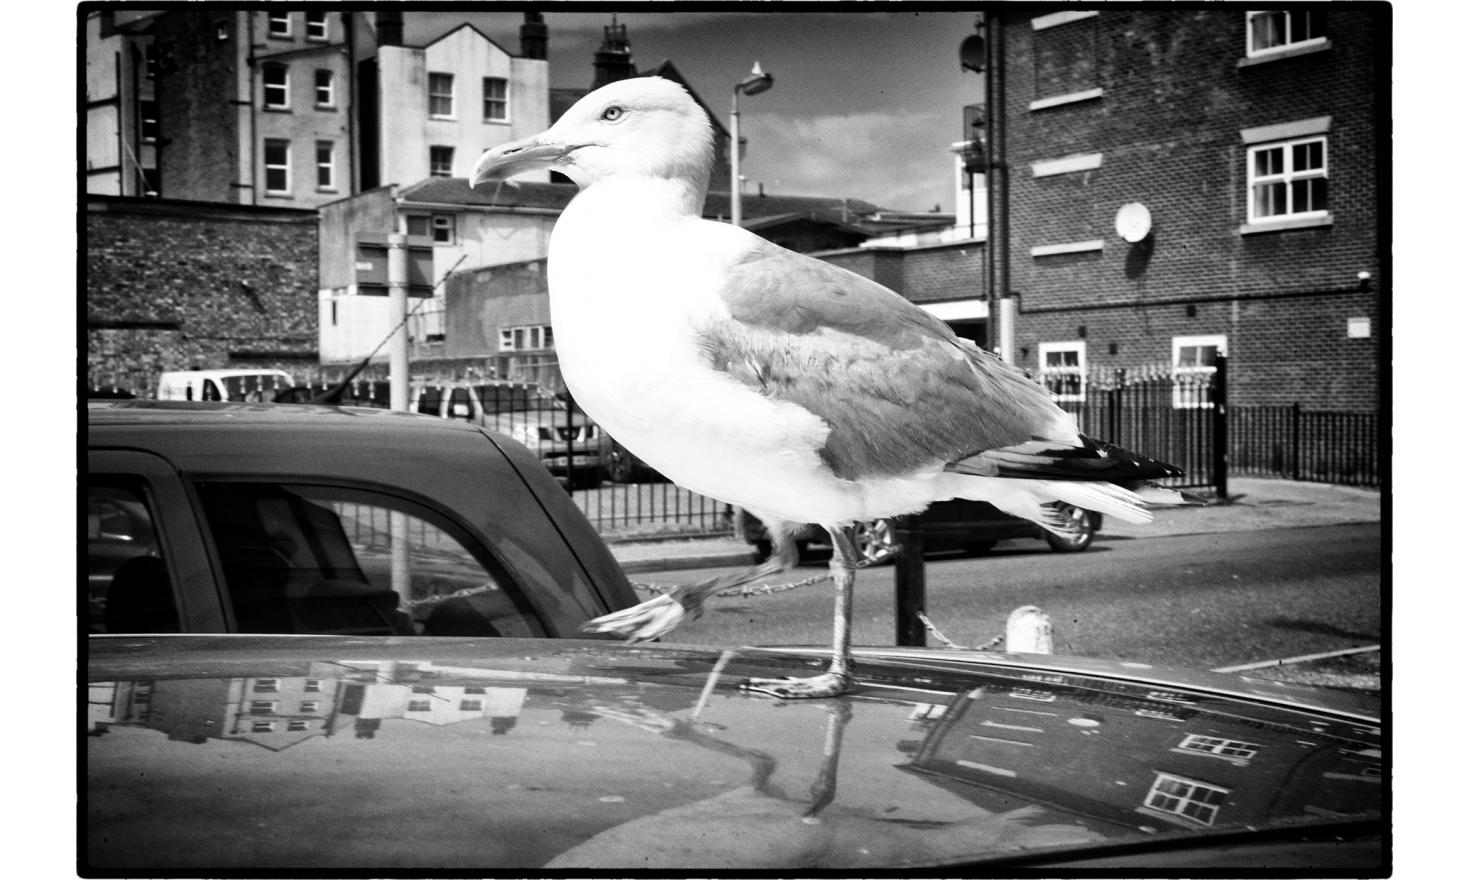 Seagulls are pretty friendly, and there are a lot of them standing and flying around. Clacton on sea, England. July 2016.